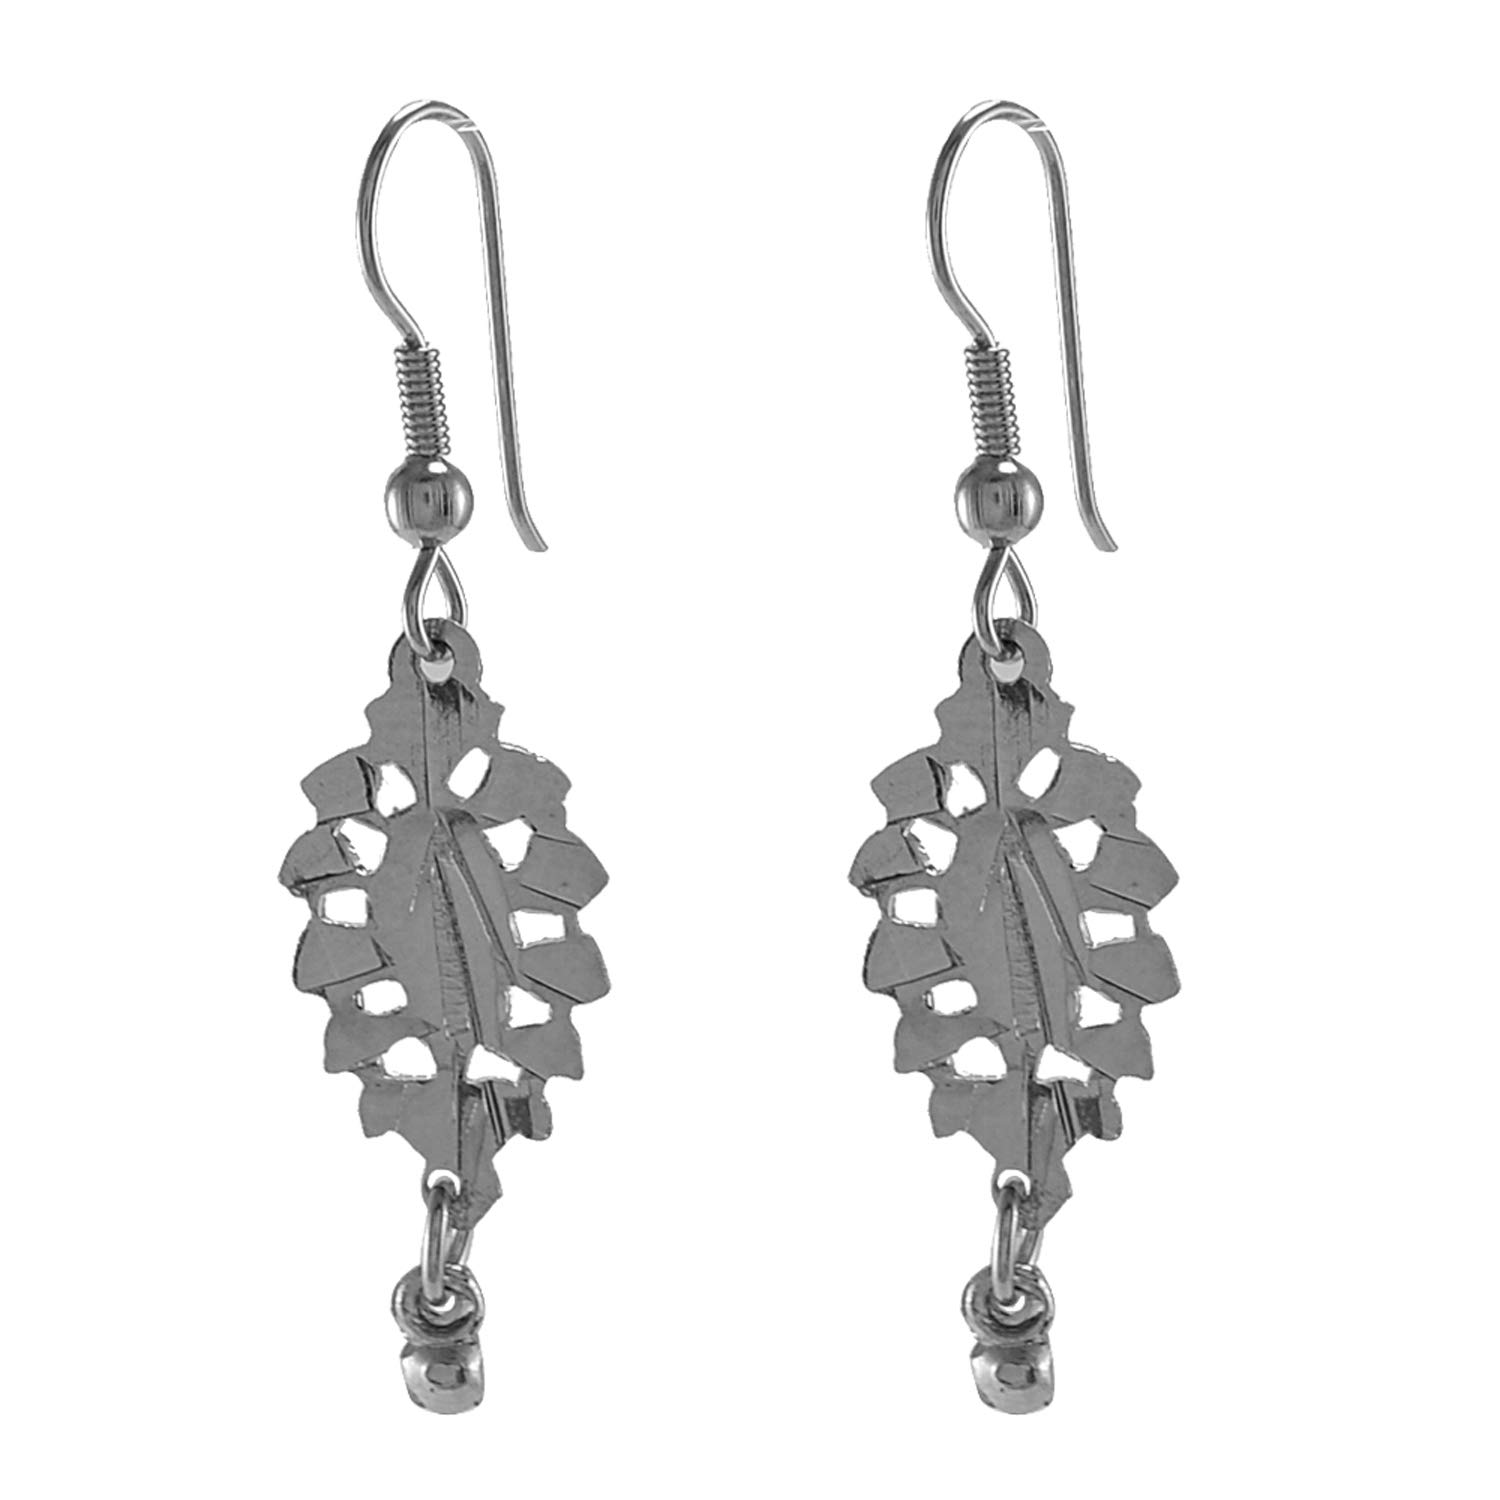 Silvestoo Jaipur 925 Silver Plated Top Earring For Women /& Girls PG-126177